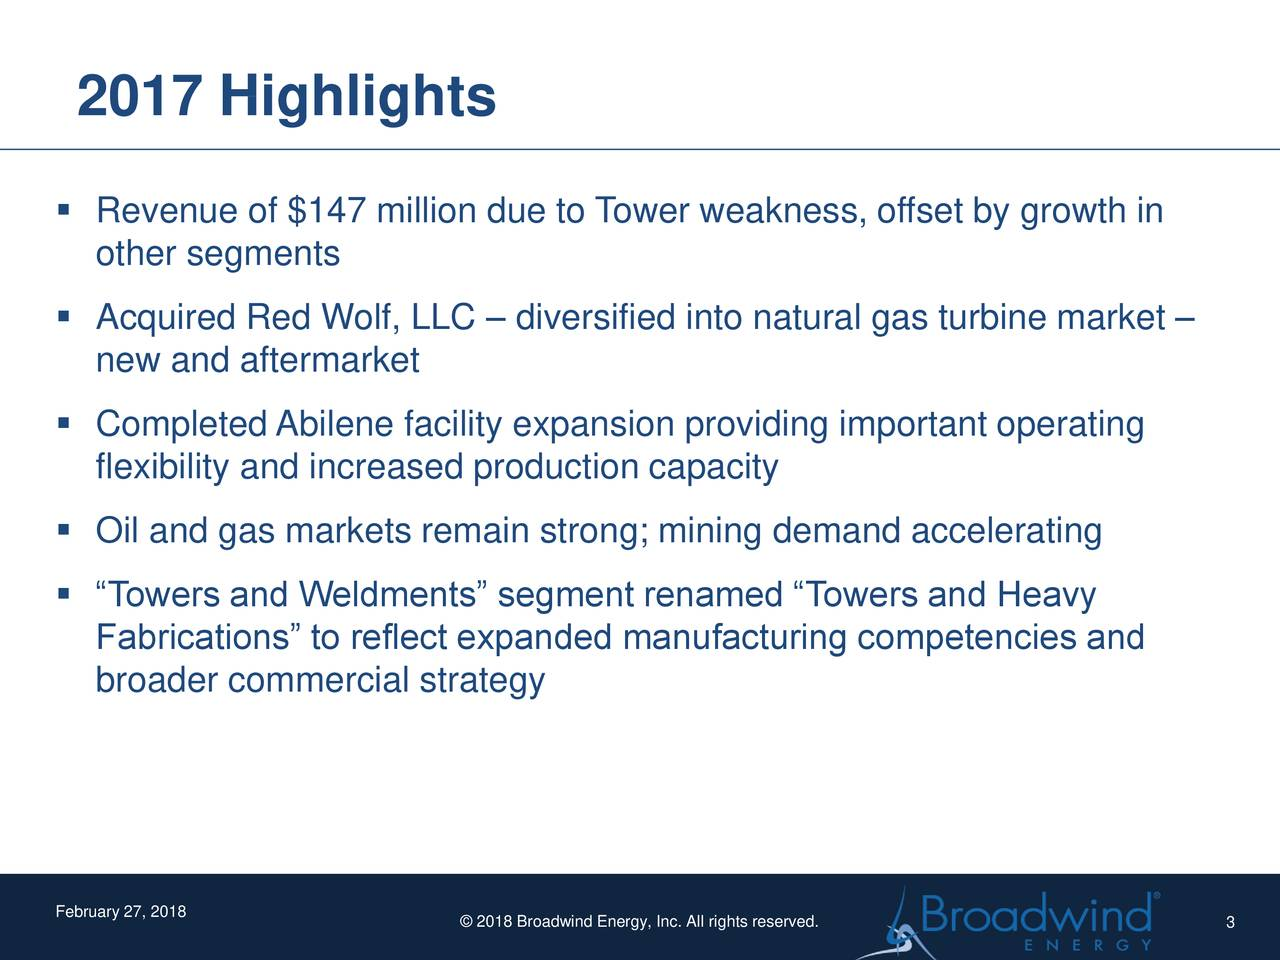 """▪ Revenue of $147 million due to Tower weakness, offset by growth in other segments ▪ Acquired Red Wolf, LLC – diversified into natural gas turbine market – new and aftermarket ▪ Completed Abilene facility expansion providing important operating flexibility and increased production capacity ▪ Oil and gas markets remain strong; mining demand accelerating ▪ """"Towers and Weldments"""" segment renamed """"Towers and Heavy Fabrications"""" to reflect expanded manufacturing competencies and broader commercial strategy February 27, 2018 © 2018 Broadwind Energy, Inc. All rights reserved. 3"""